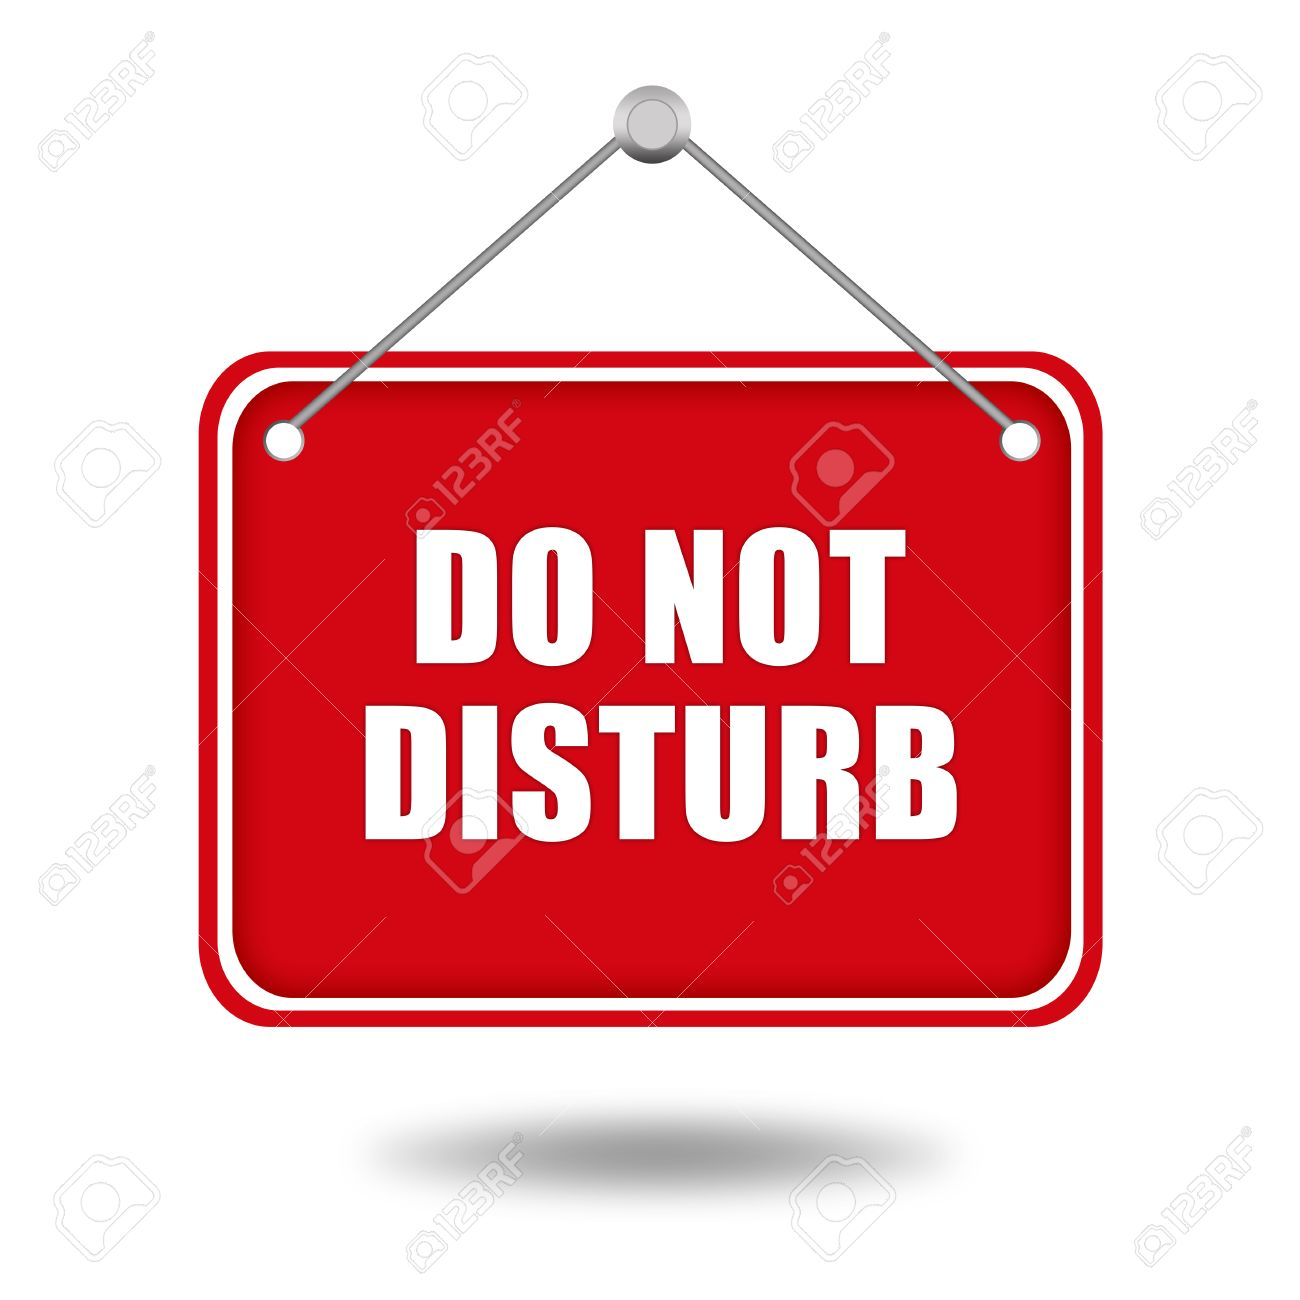 2 033 do not disturb sign stock illustrations cliparts and royalty